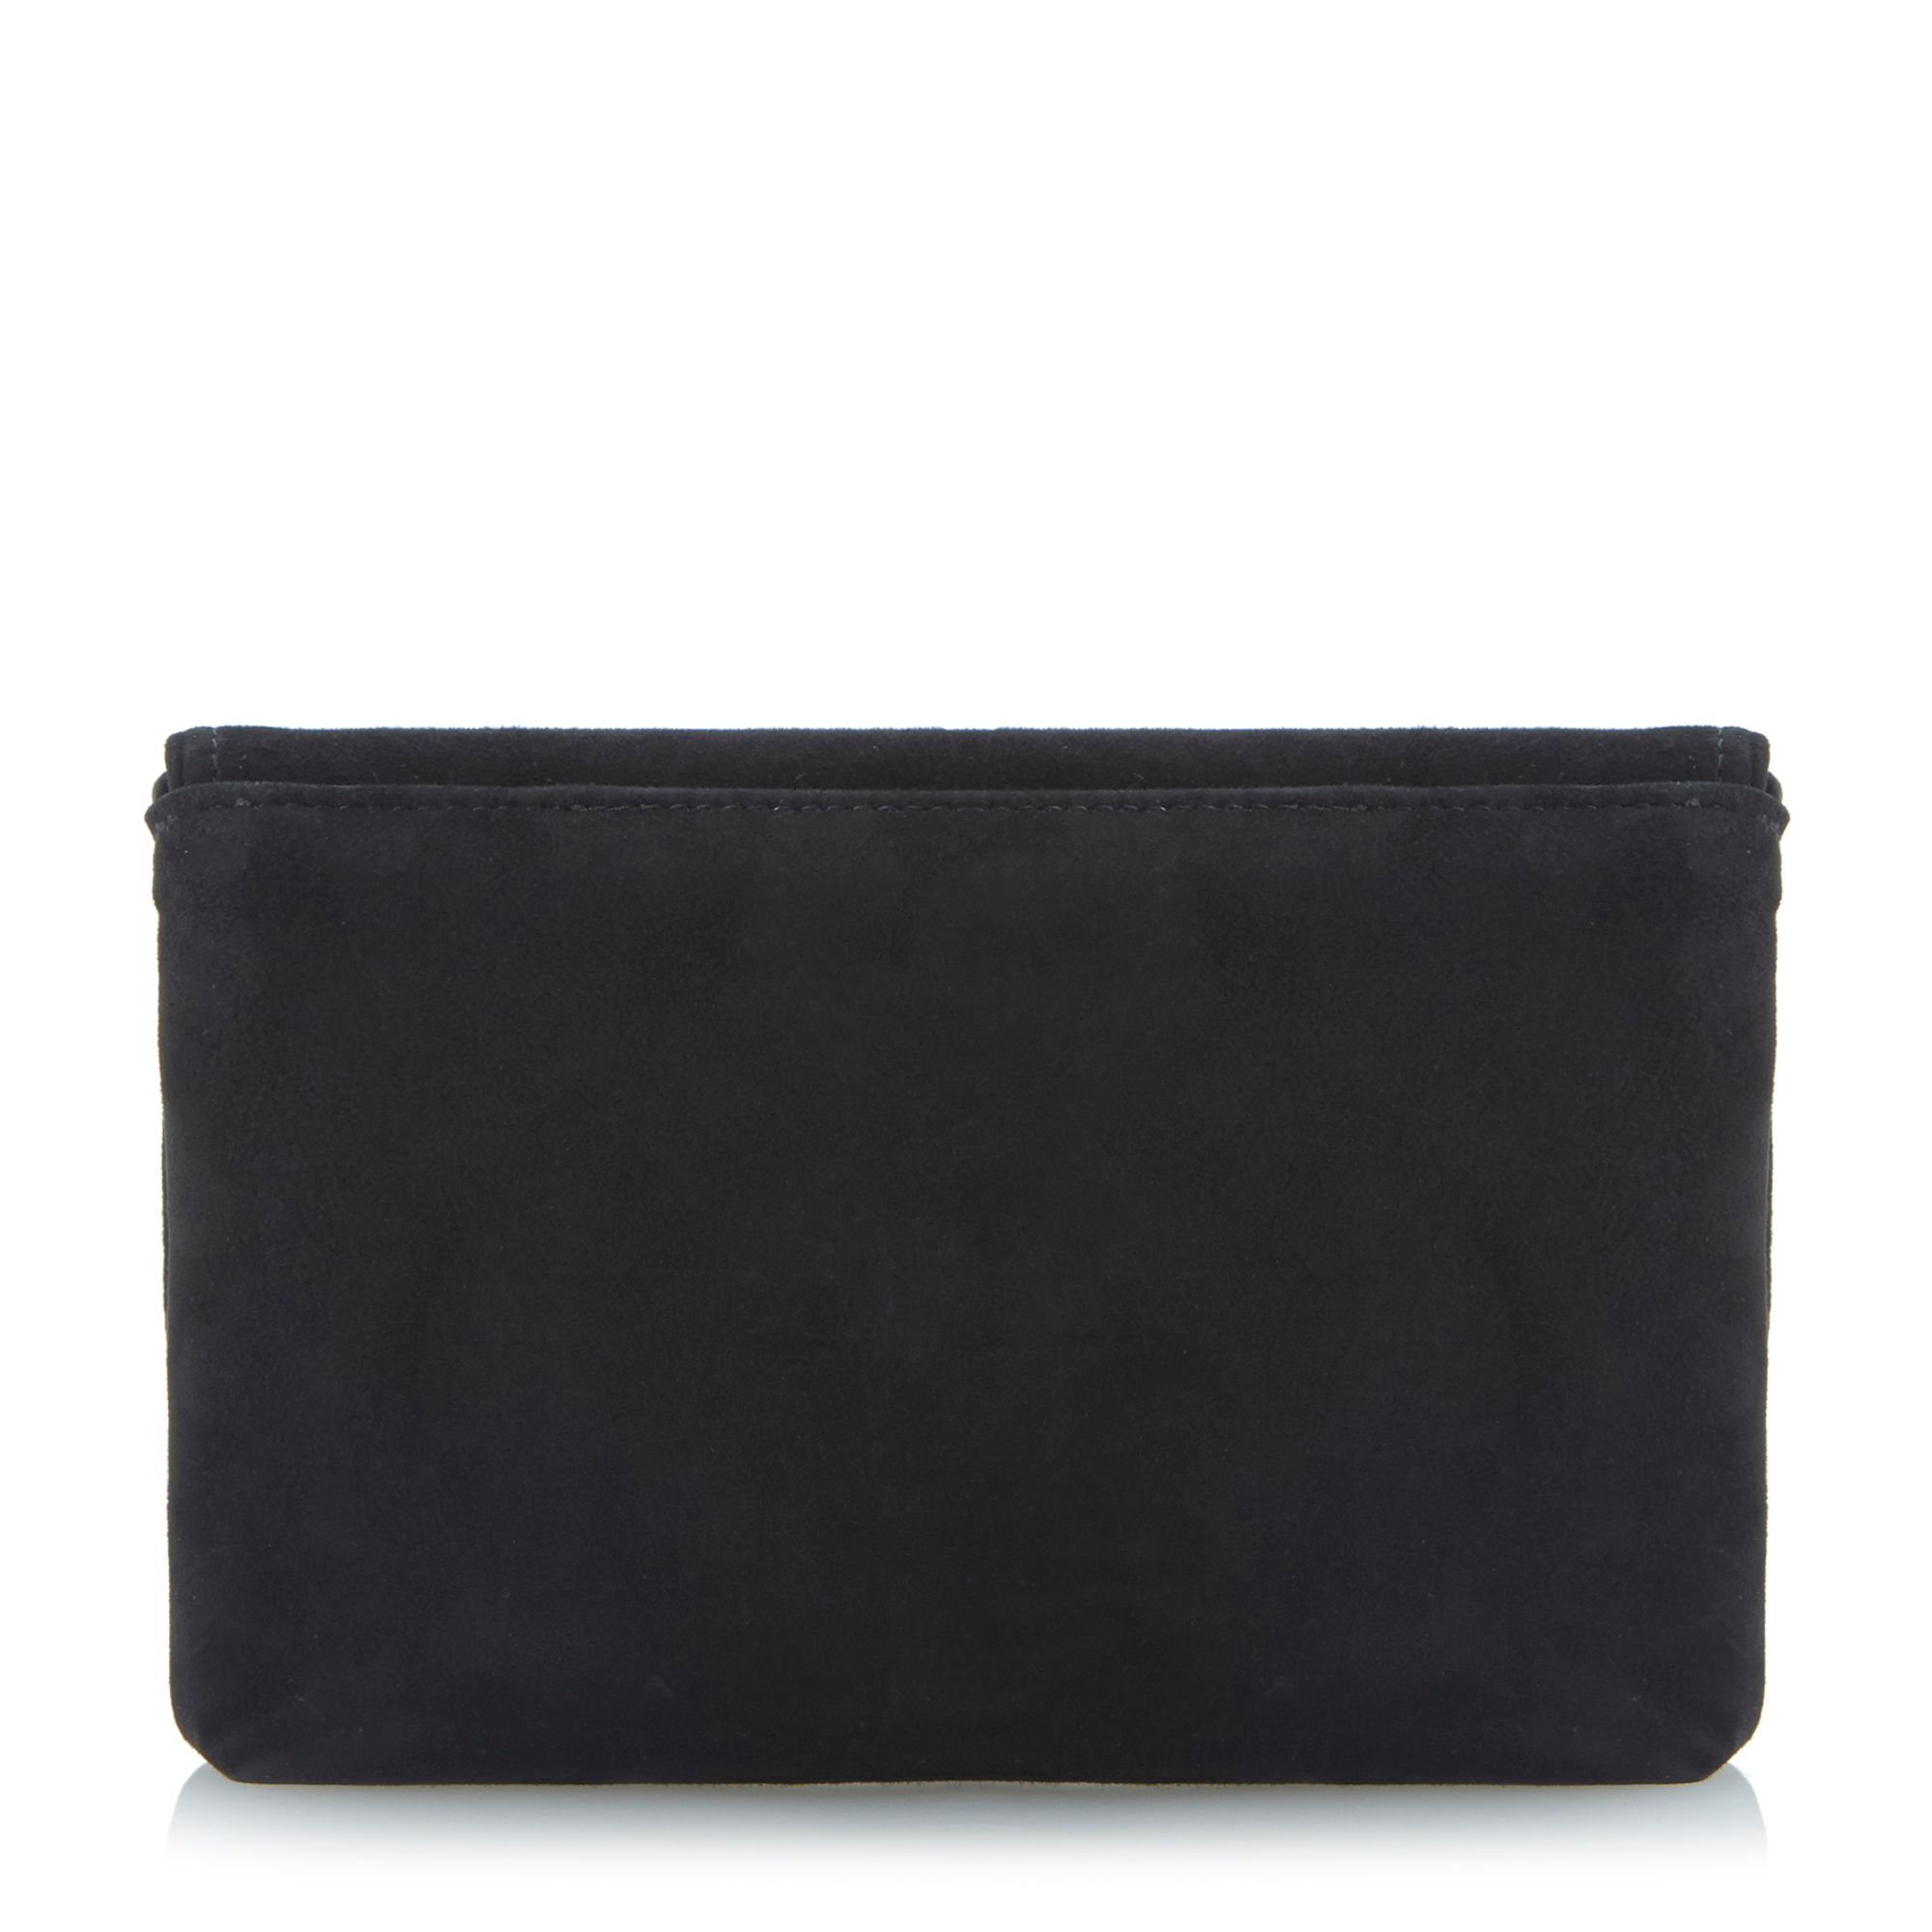 Beauti padlock suede clutch bag